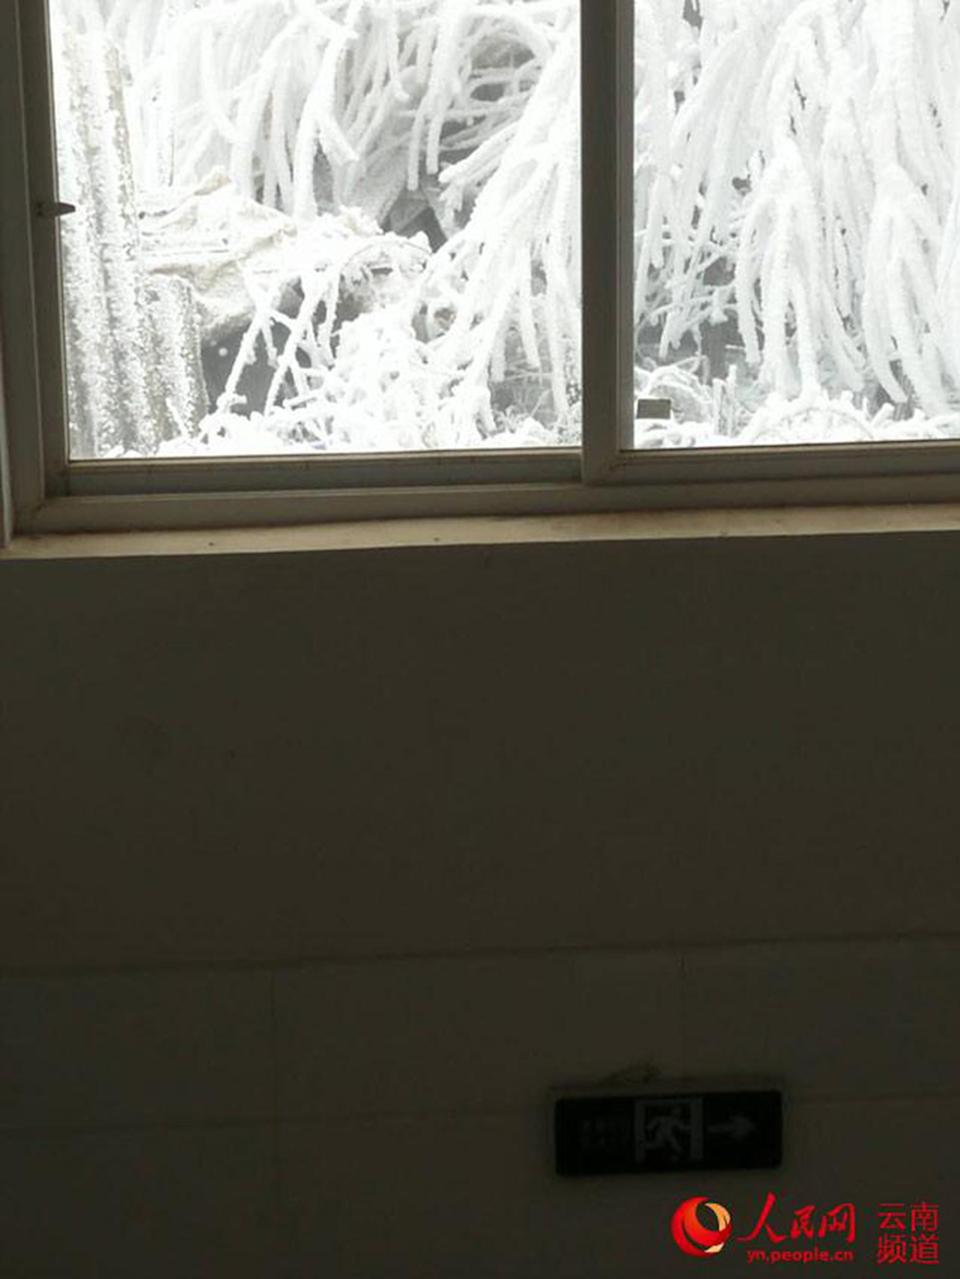 There is no heating in the school (Picture: Asia Wire)